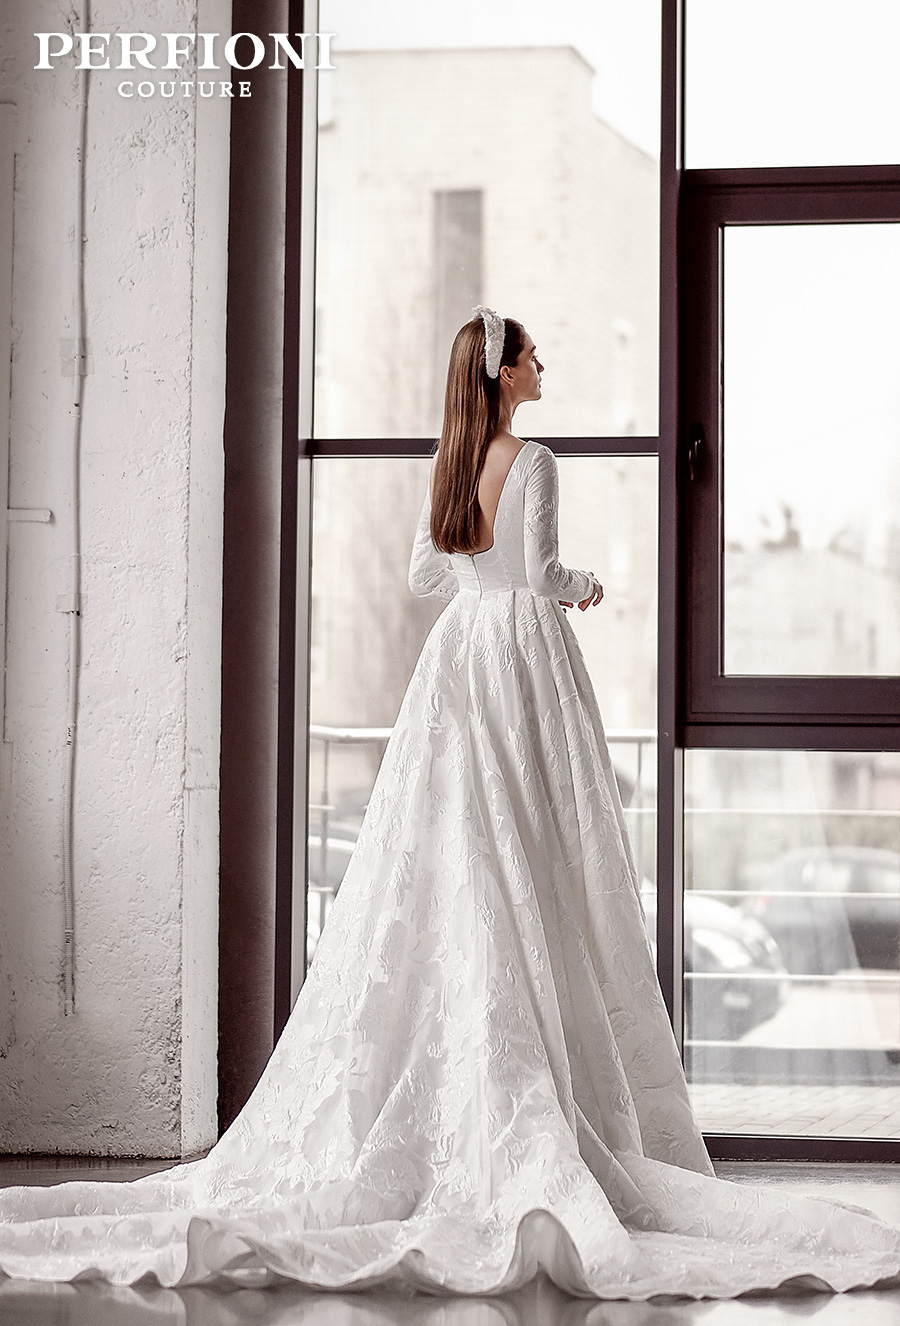 perfioni 2020 love season bridal long sleeves bateau neck full embellisment simple princess a line wedding dress backless royal train (gabriella) bv